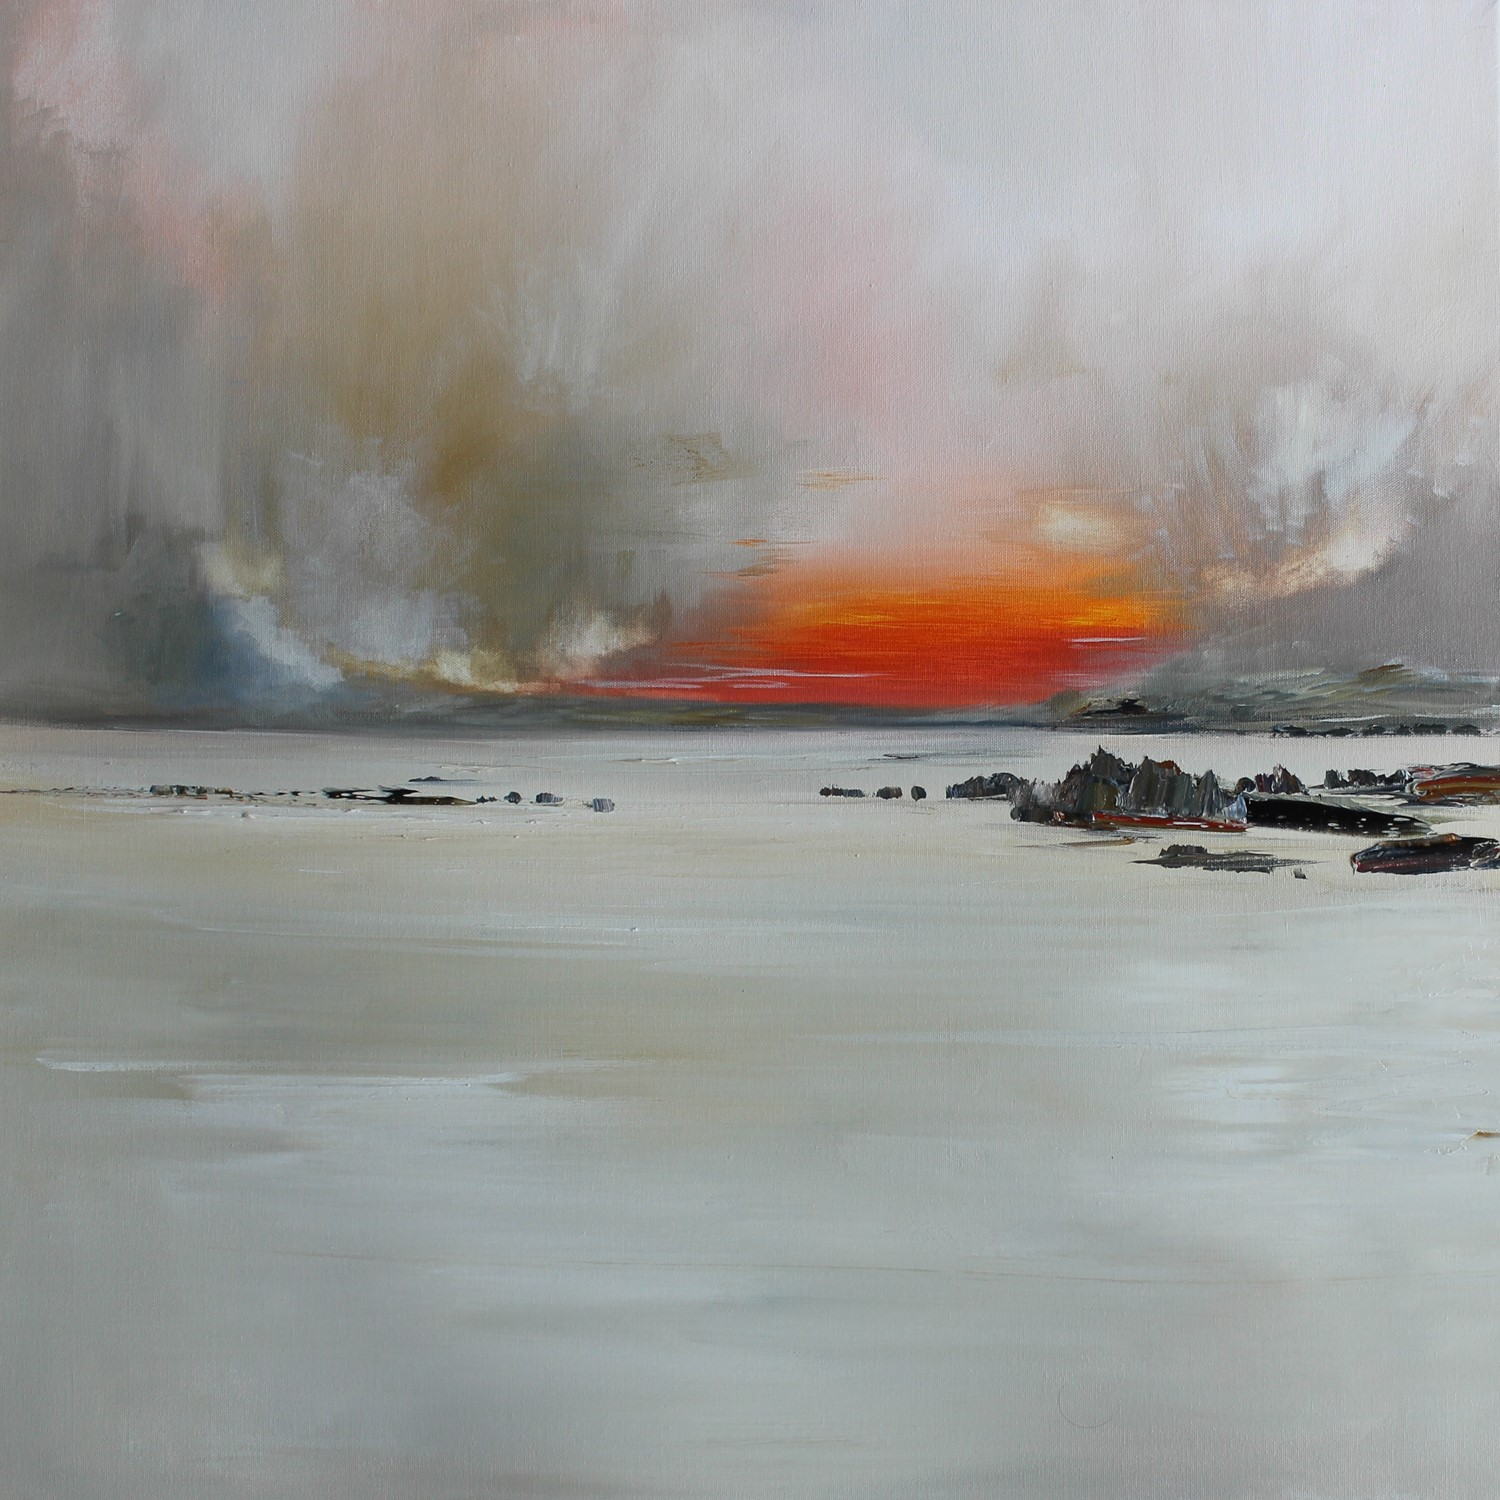 'A Lingering Haar over the sunset' by artist Rosanne Barr